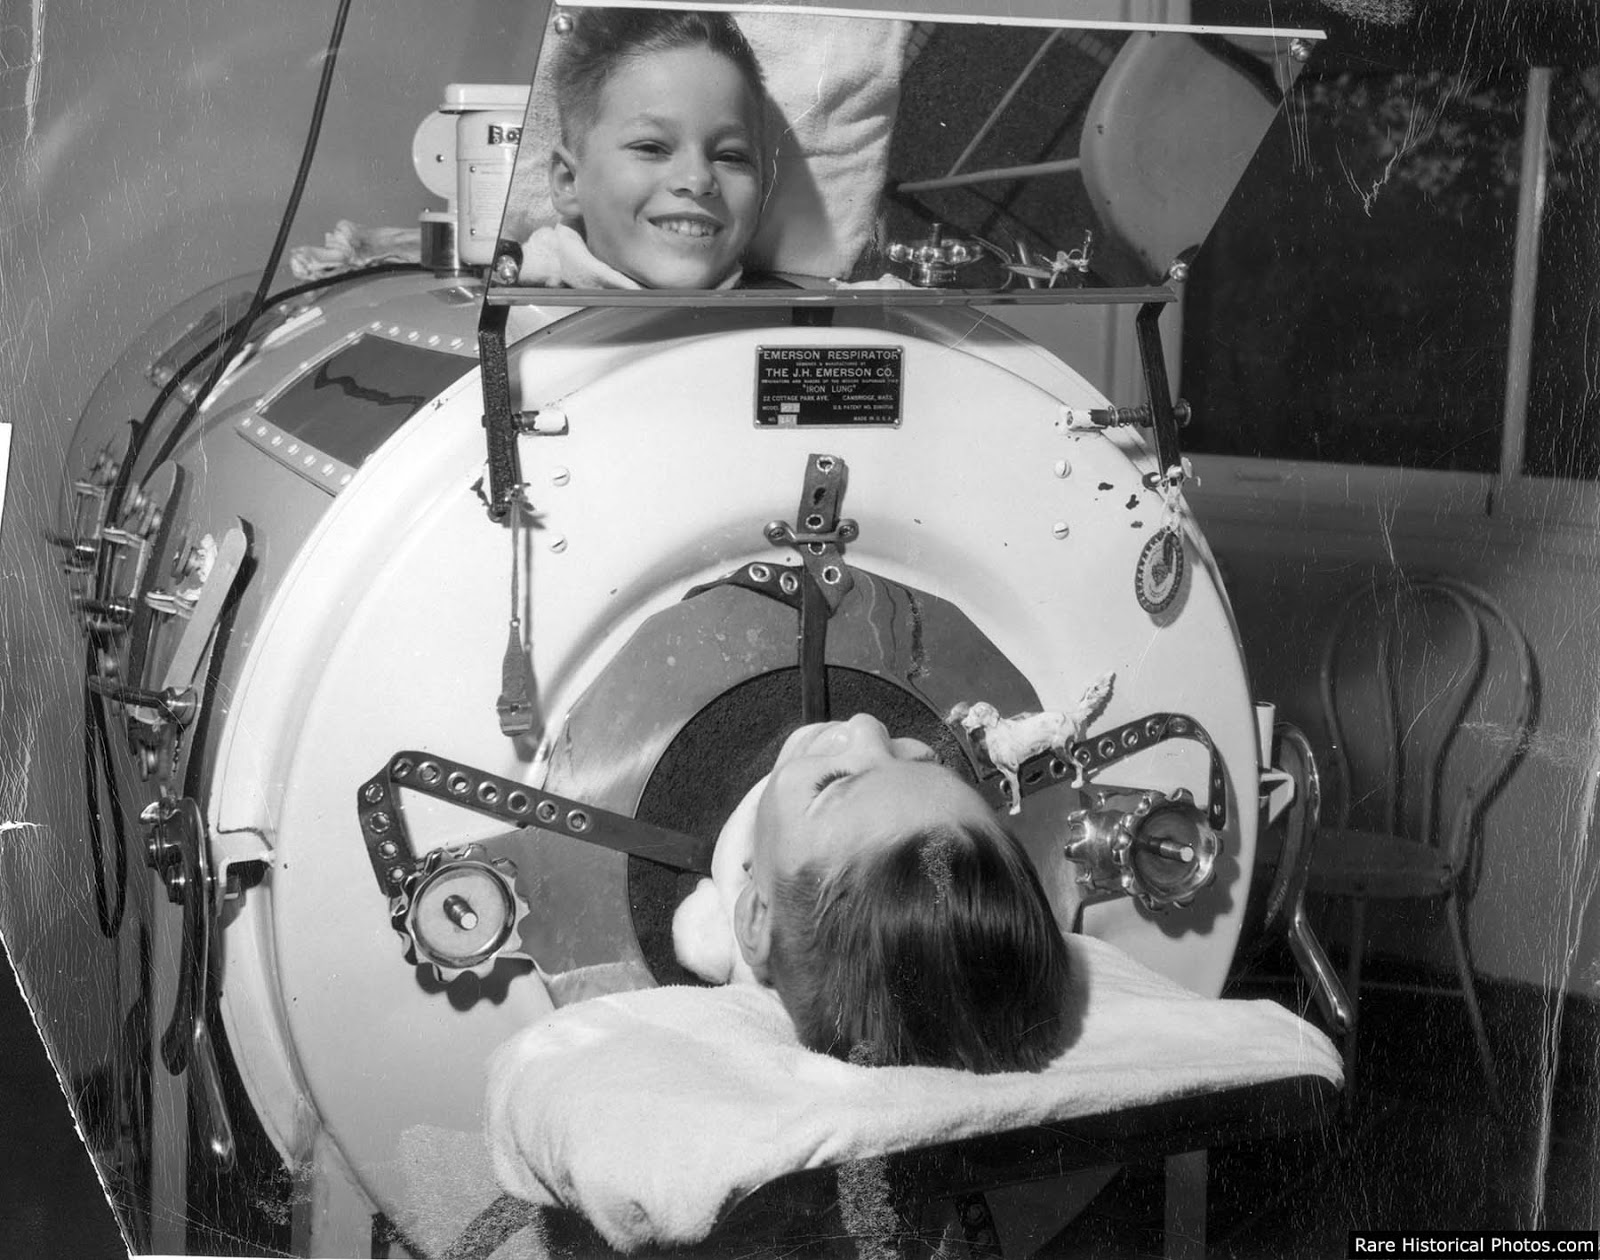 Unable to breathe, patients entered iron lungs, which made use of negative pressure ventilation to compress and depress the chest, simulating respiration.